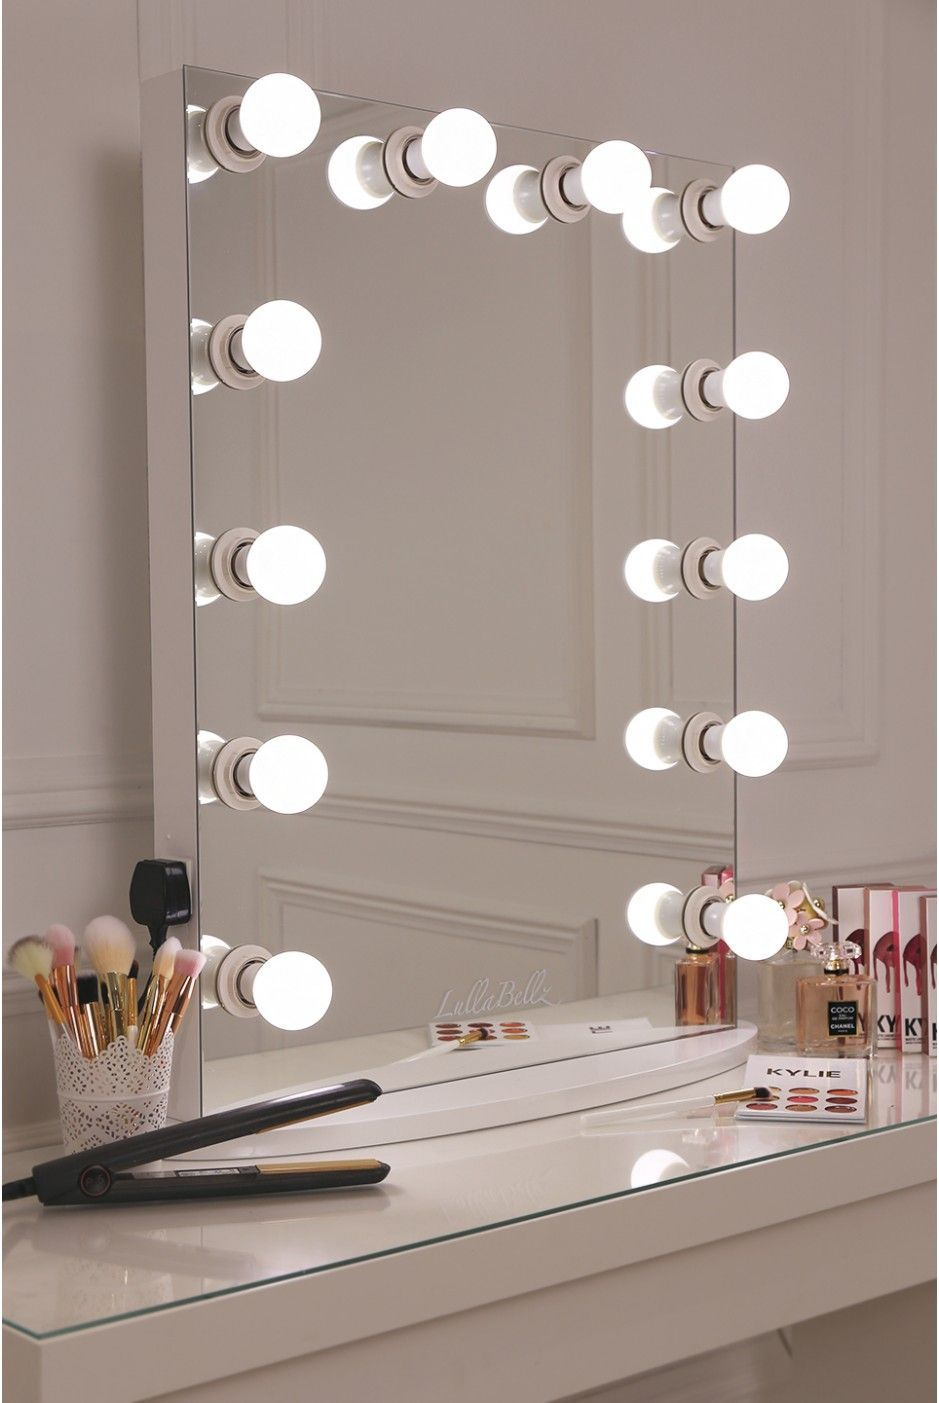 The Best Lighted Makeup Mirrors On Amazon According To Reviewers Room Inspiration Diy Vanity Mirror Room Decor